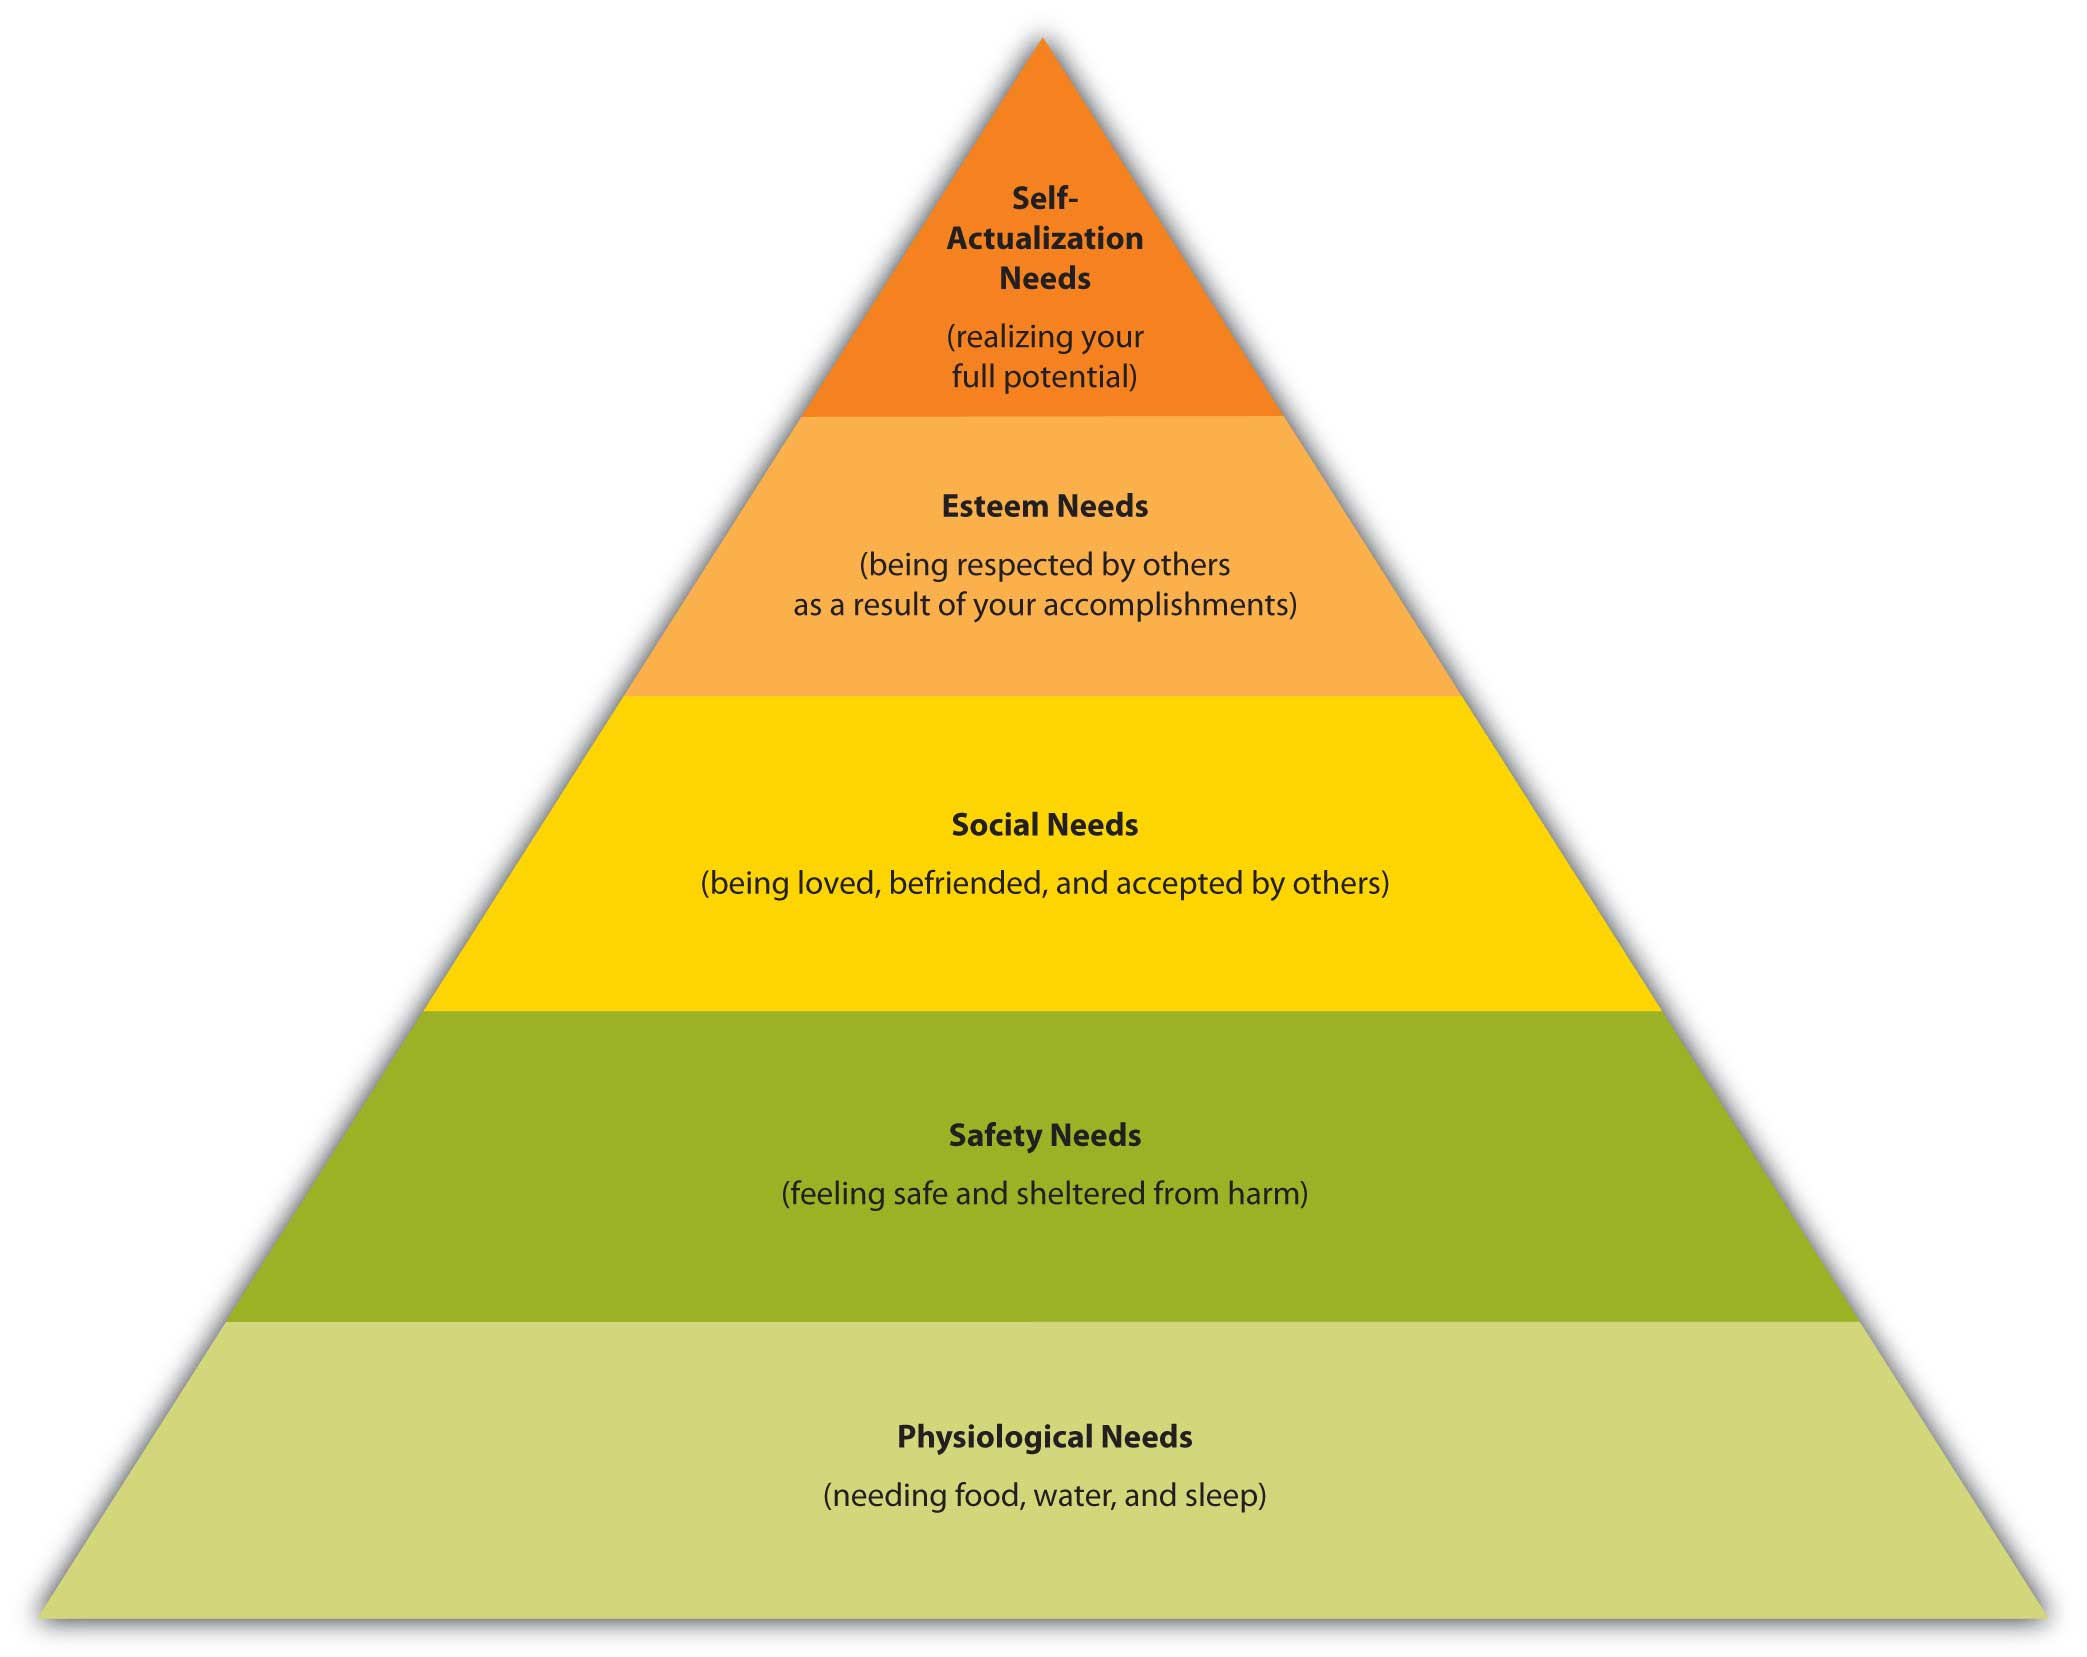 Maslow's Hierarchy of Needs Triangle